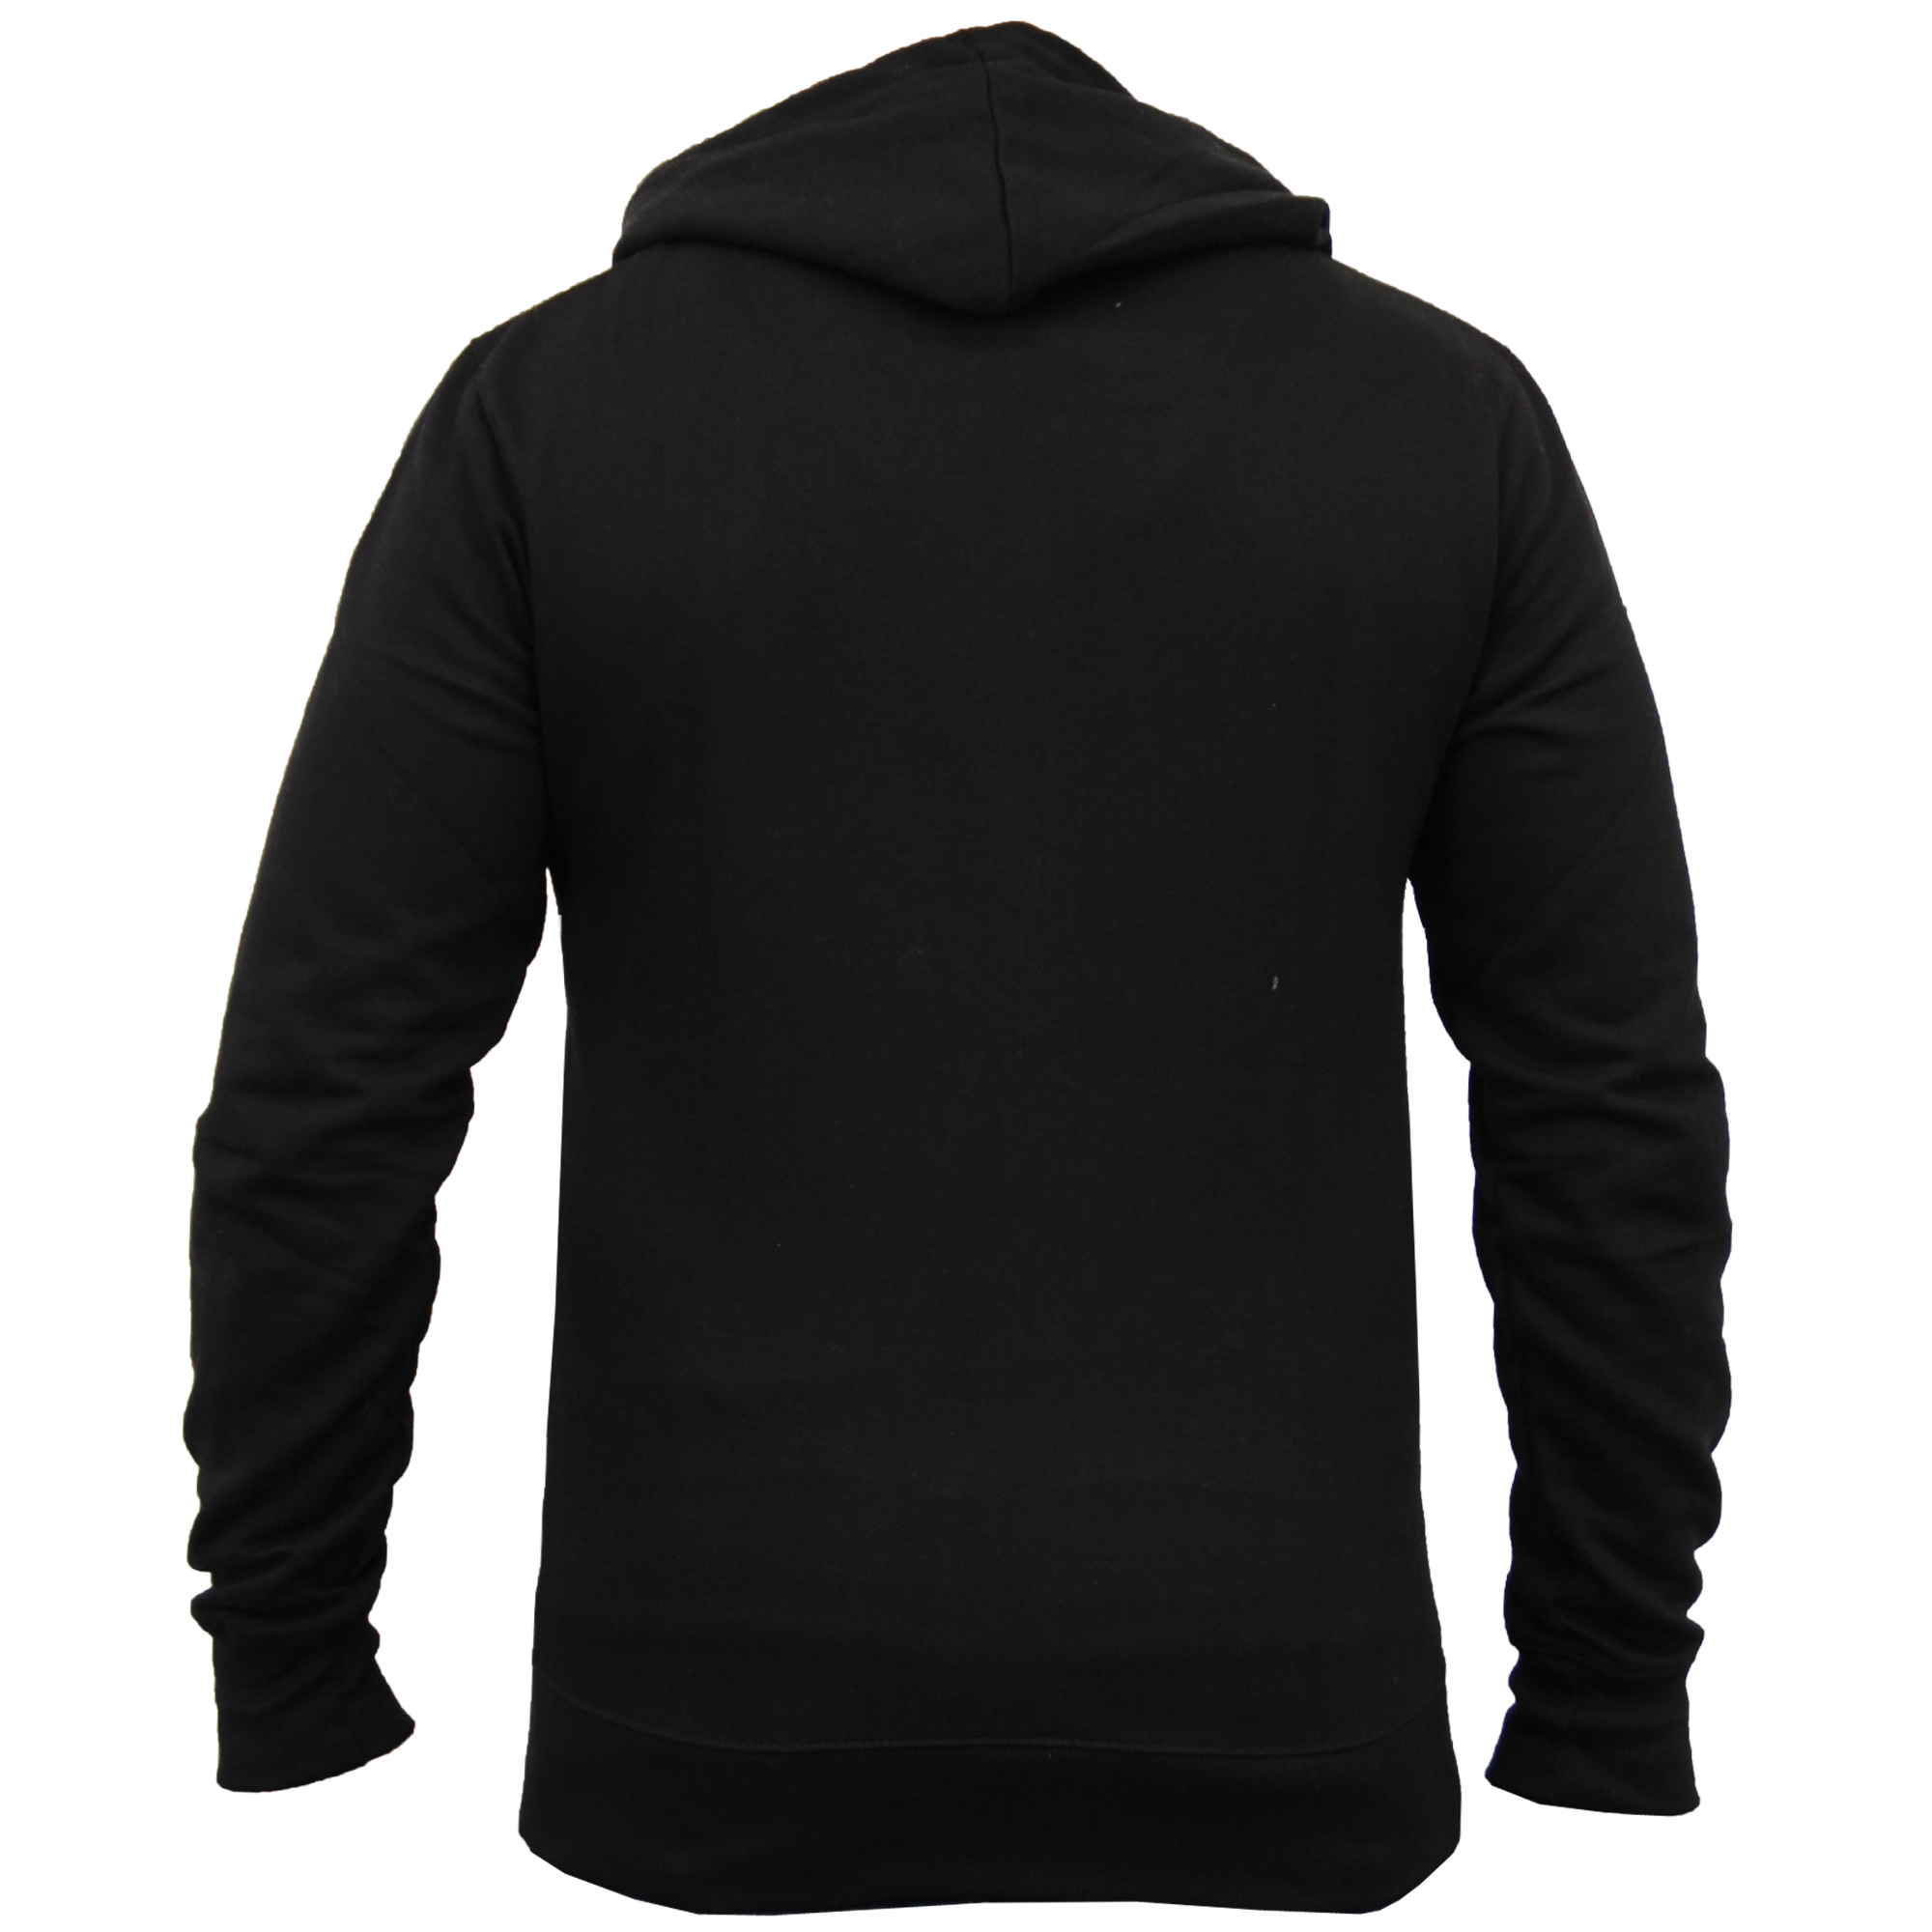 Mens-Diamond-Quilted-Hooded-Top-Fleece-Lined-Sweatshirt-By-Galvanize thumbnail 4